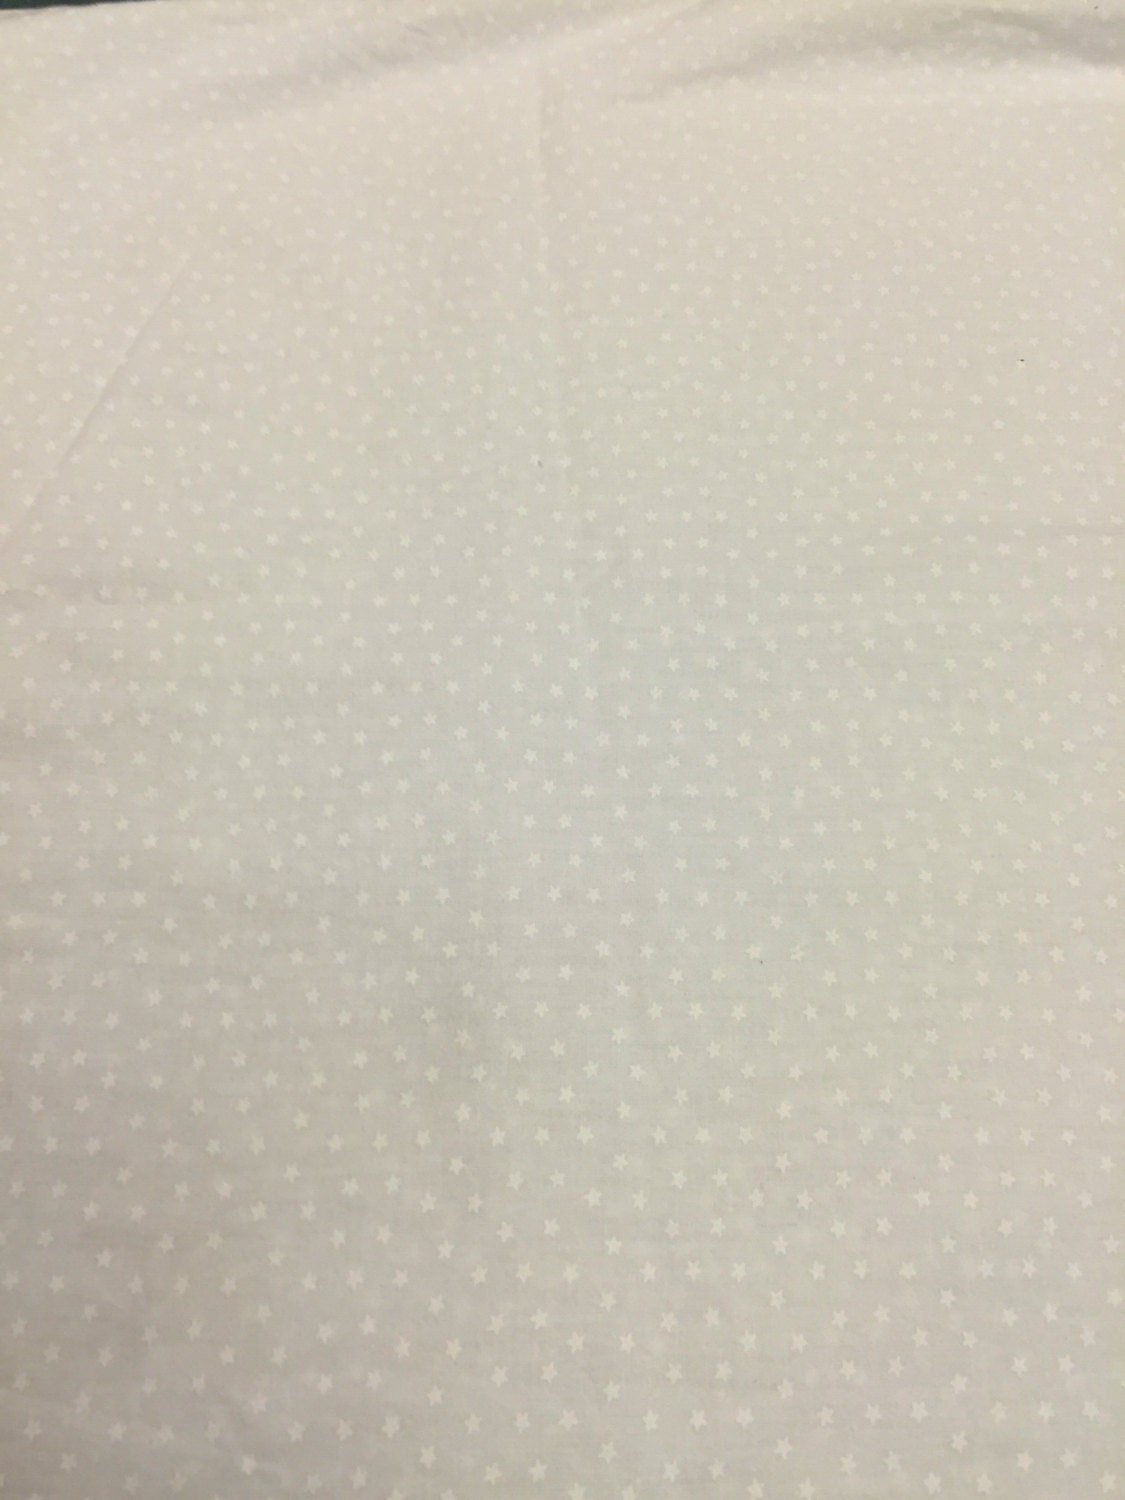 Star fabric fq white fabric white on white fabric for Star fabric australia